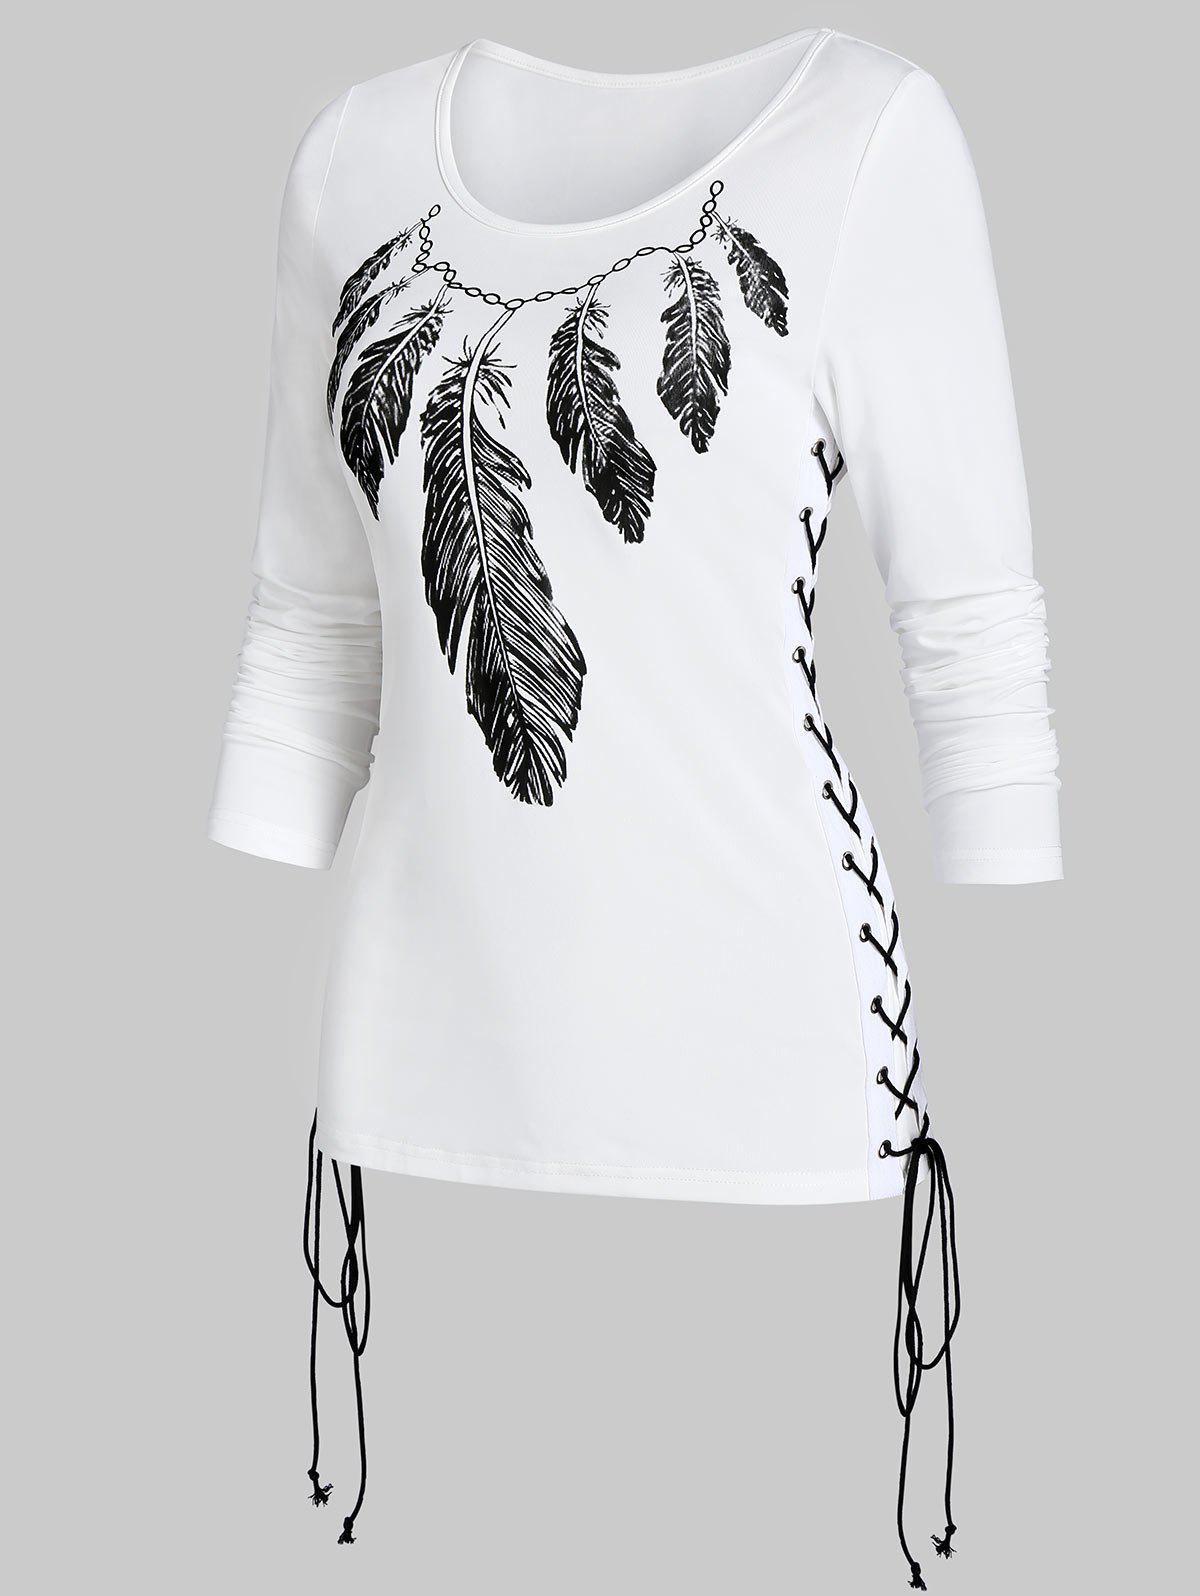 New Feather Print Lace Up Long Sleeve T Shirt